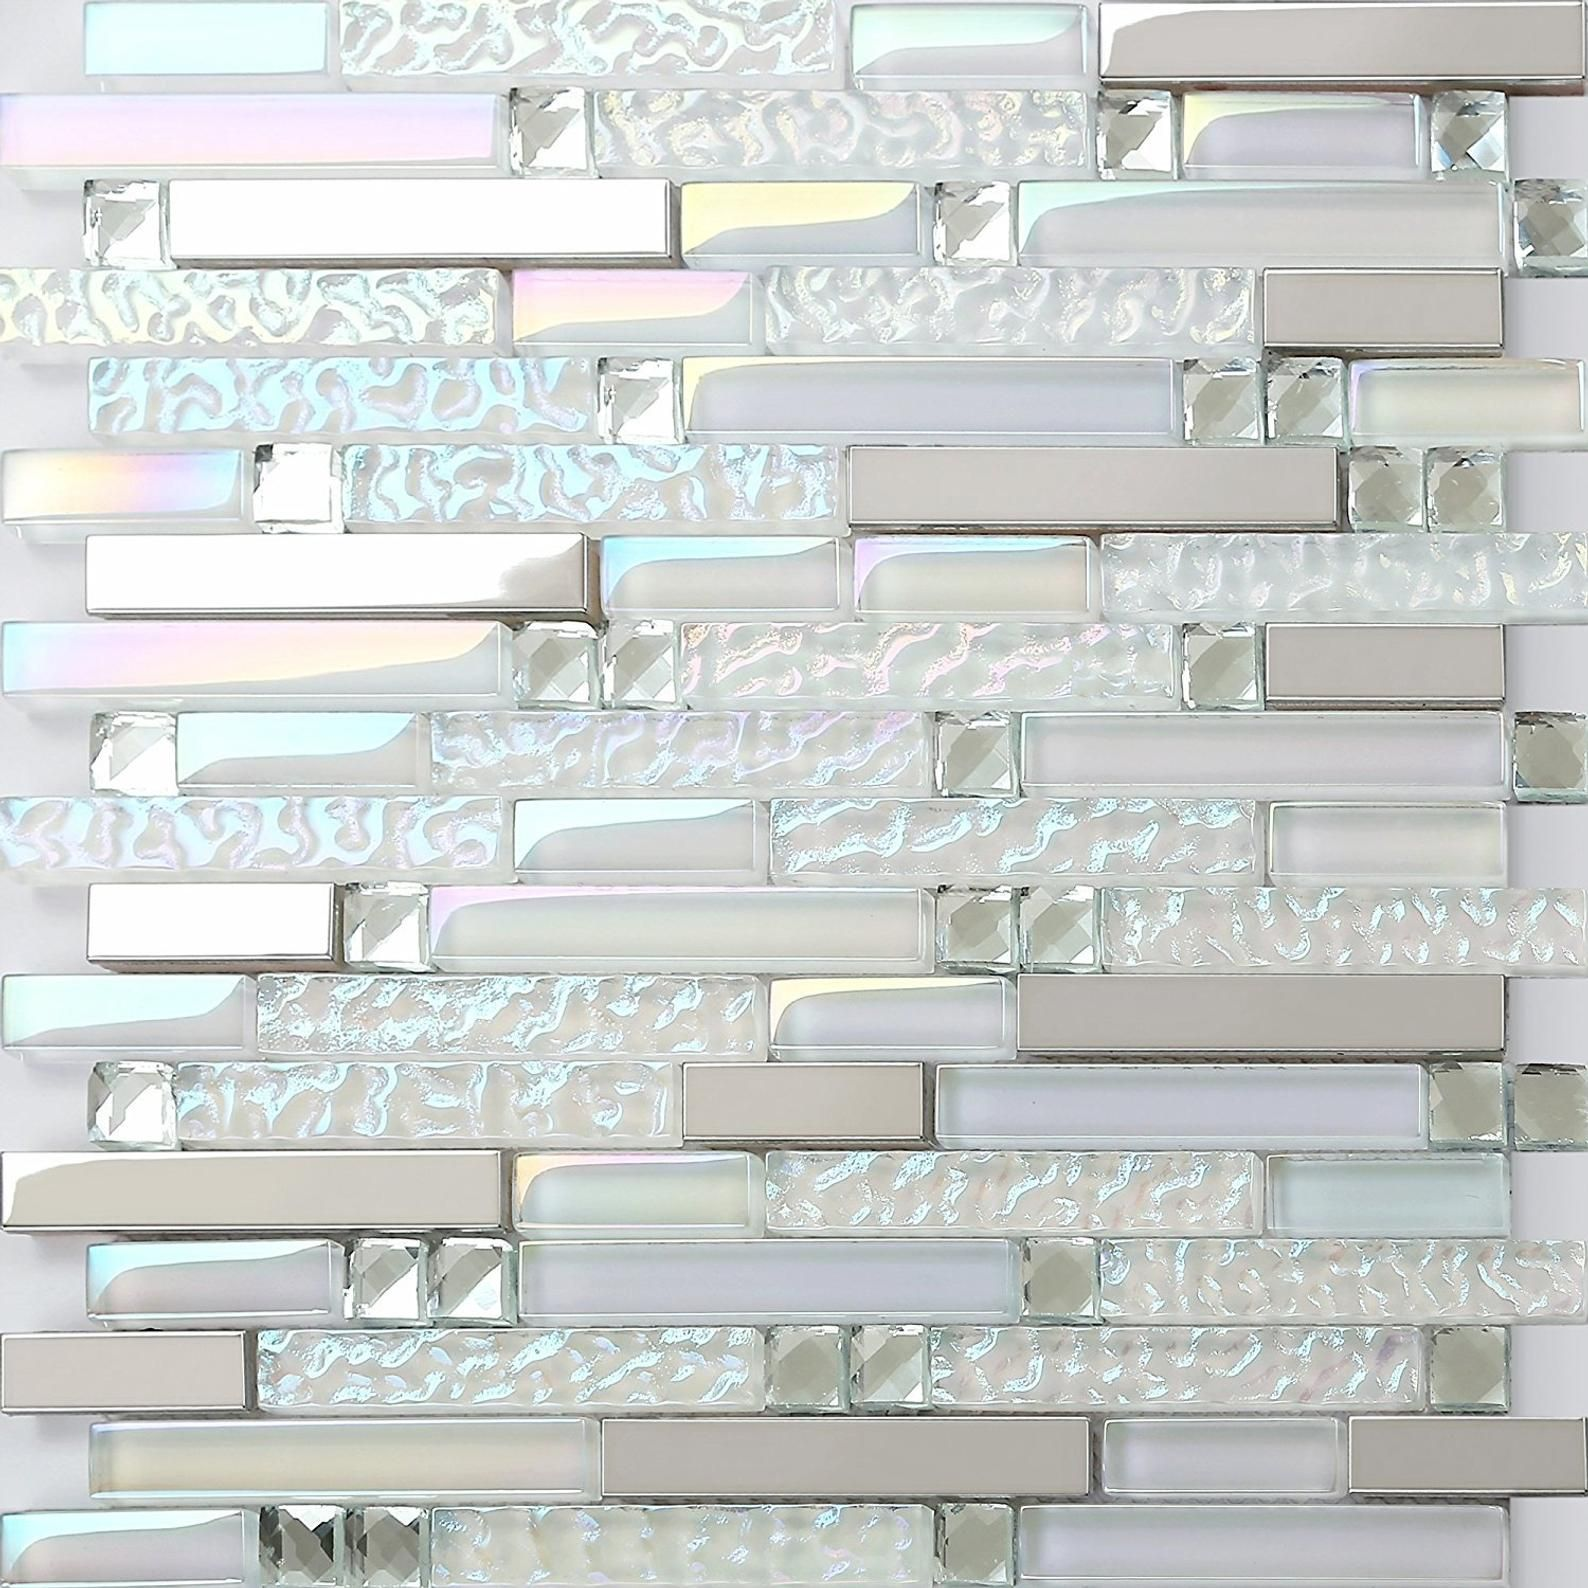 Iridescent White Amp Silver Nb01 12 Quot X11 8 Quot Sheet Glass Mix